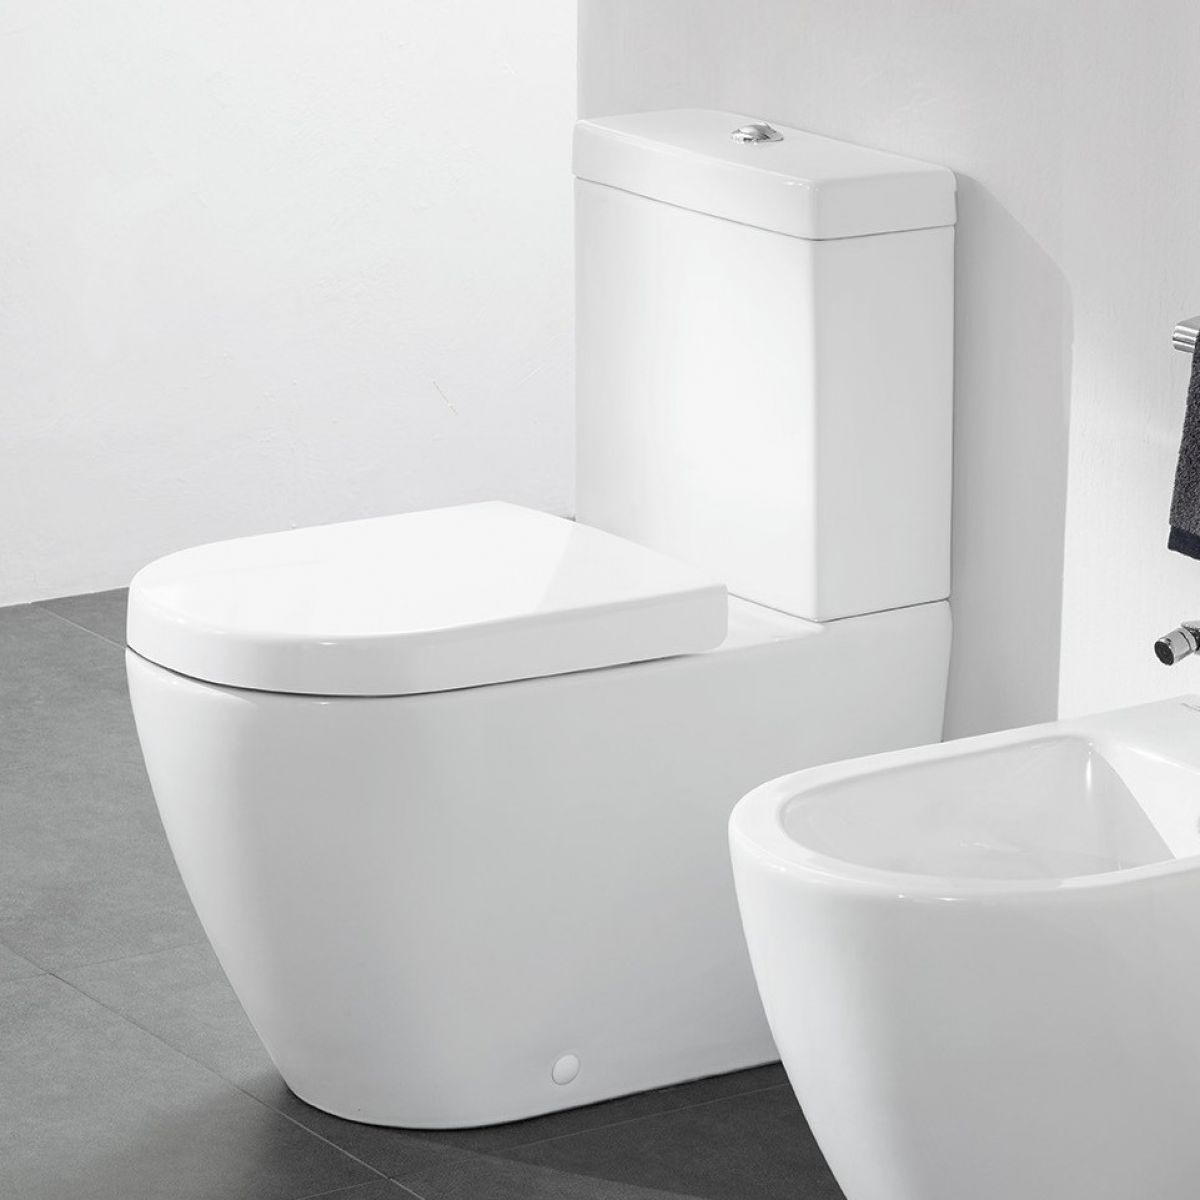 Villeroy And Boch Subway 2 0 Rimless Close Coupled Wc Close Coupled Toilets Subway Villeroy Boch